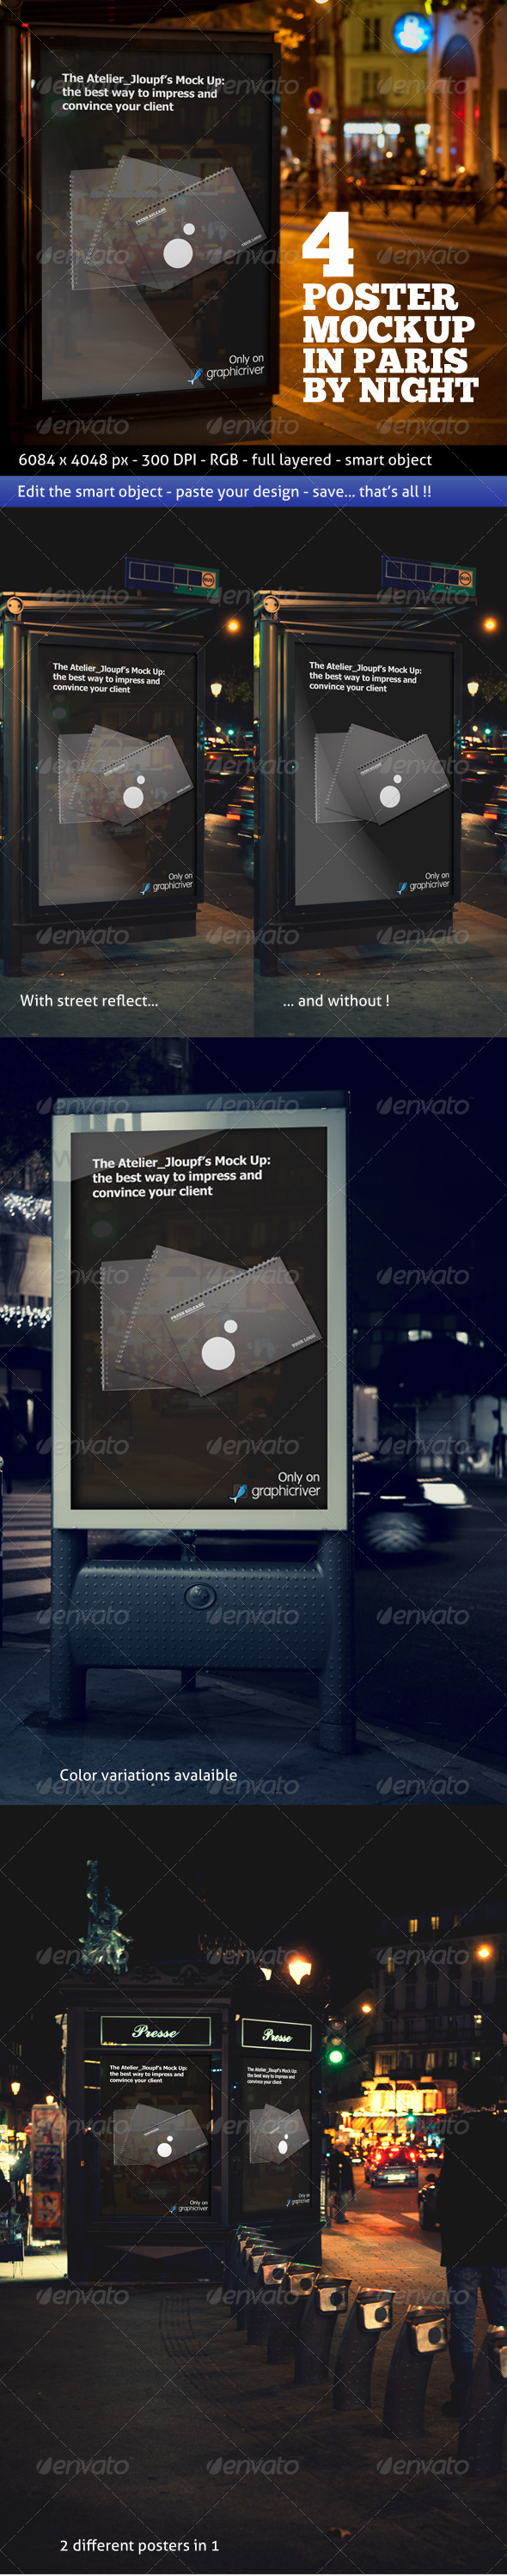 Photorealistic Poster Mockup In Paris By Night